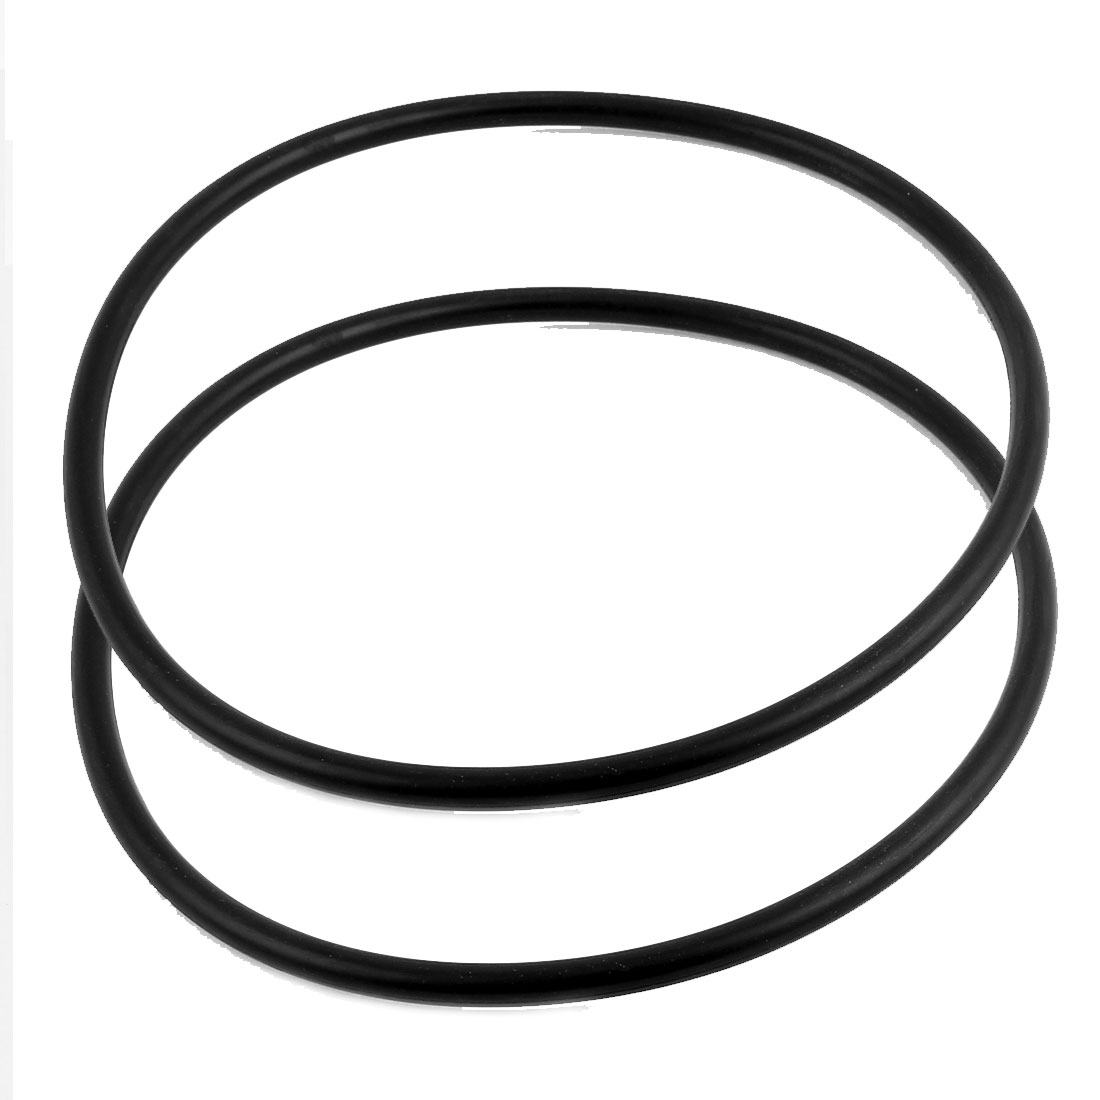 2Pcs Black Universal O-Ring 220mm x 8.6mm BUNA-N Material Oil Seal Washers Grommets